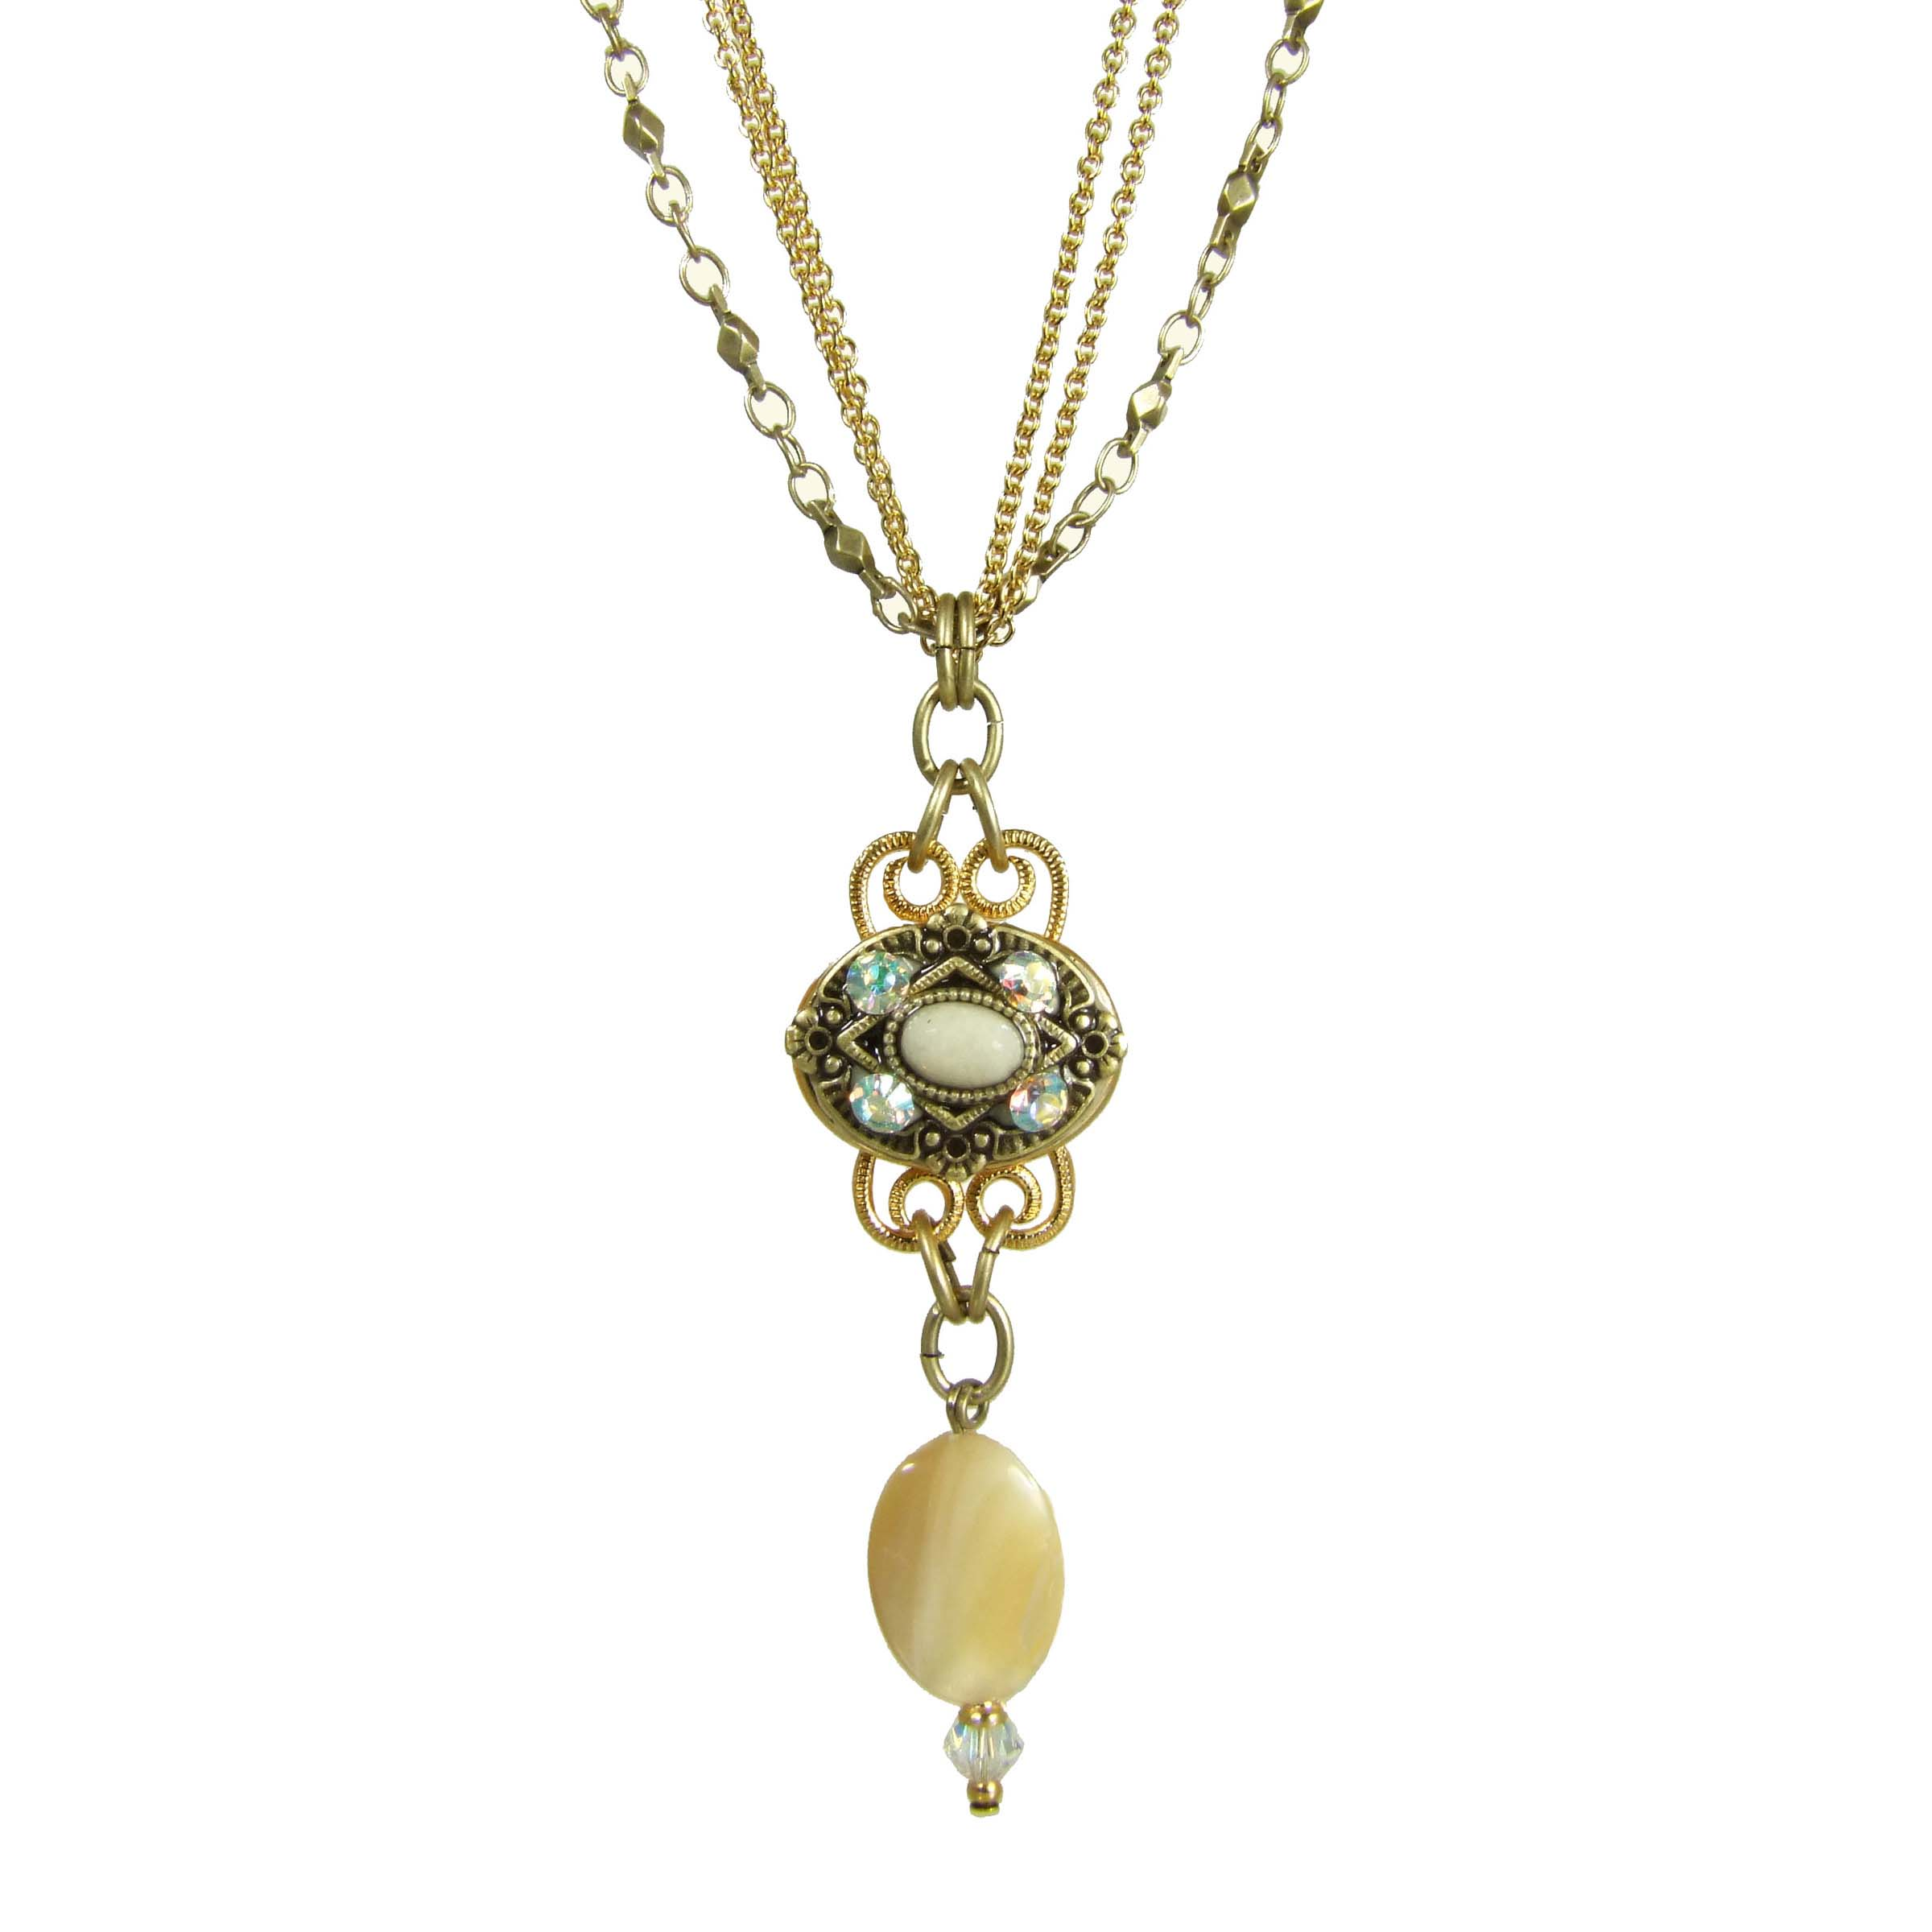 Riverstone Charm Necklace